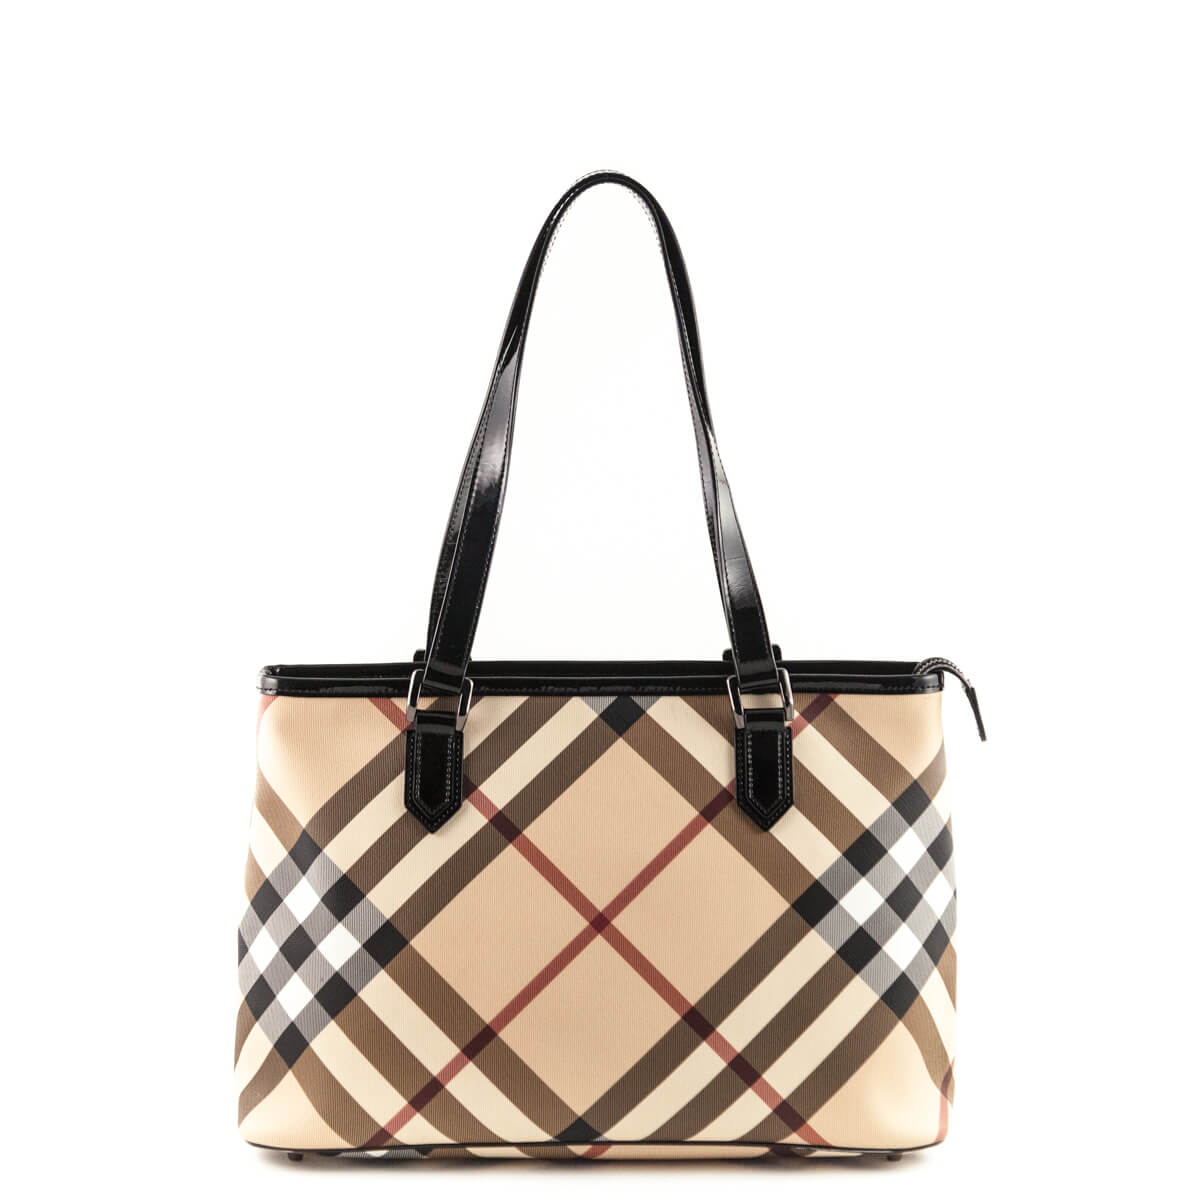 b8e408507708 Burberry Nova Check Tote Bag - LOVE that BAG - Preowned Authentic Designer  Handbags ...